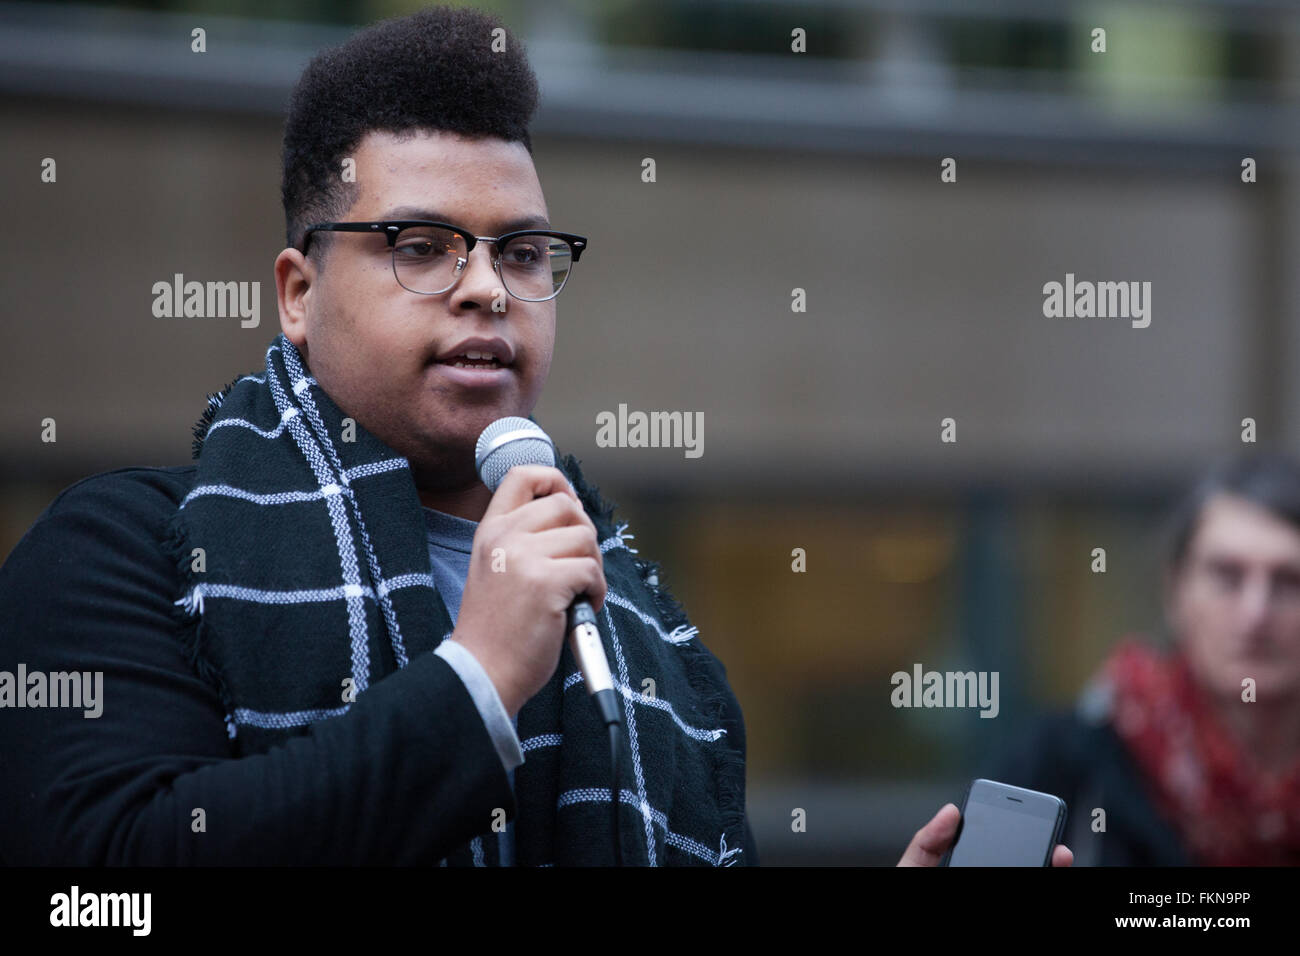 London, UK. 9th March 2016. Wael of Defend The Right To Protest speaks at the protest outside the Home Office calling - Stock Image